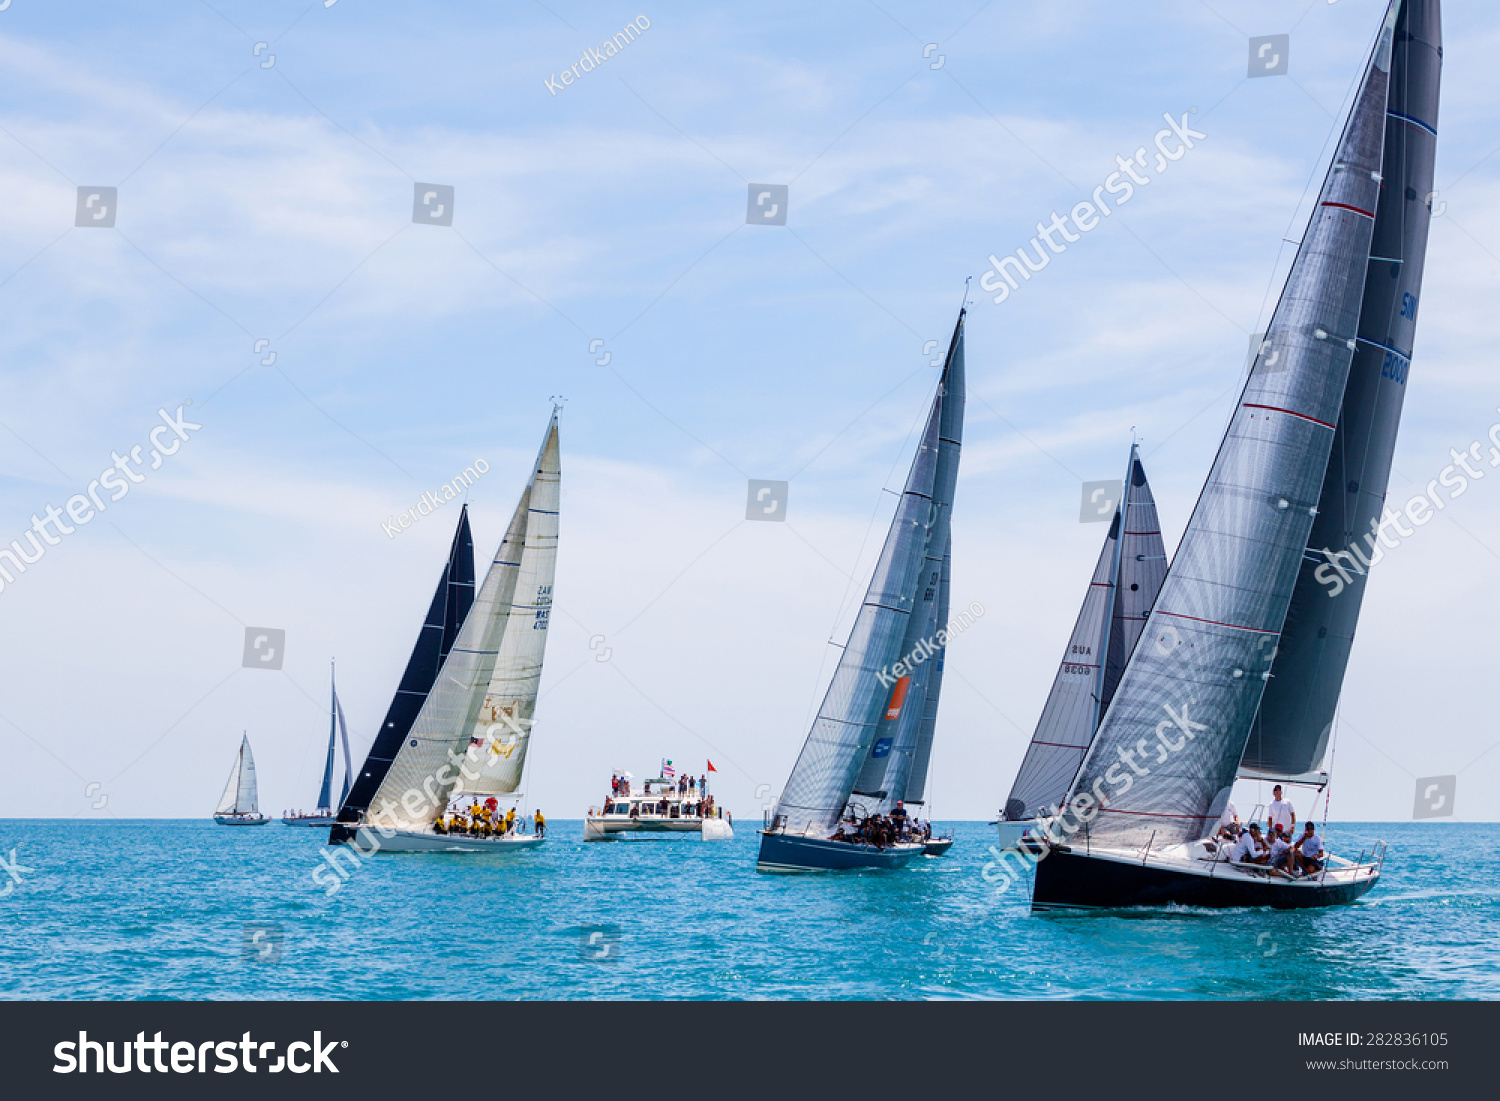 SAMUI REGATTA 2015 THAILAND MAY 30 Event at Chaweng beach Koh Samui island Thailand May 30 2015